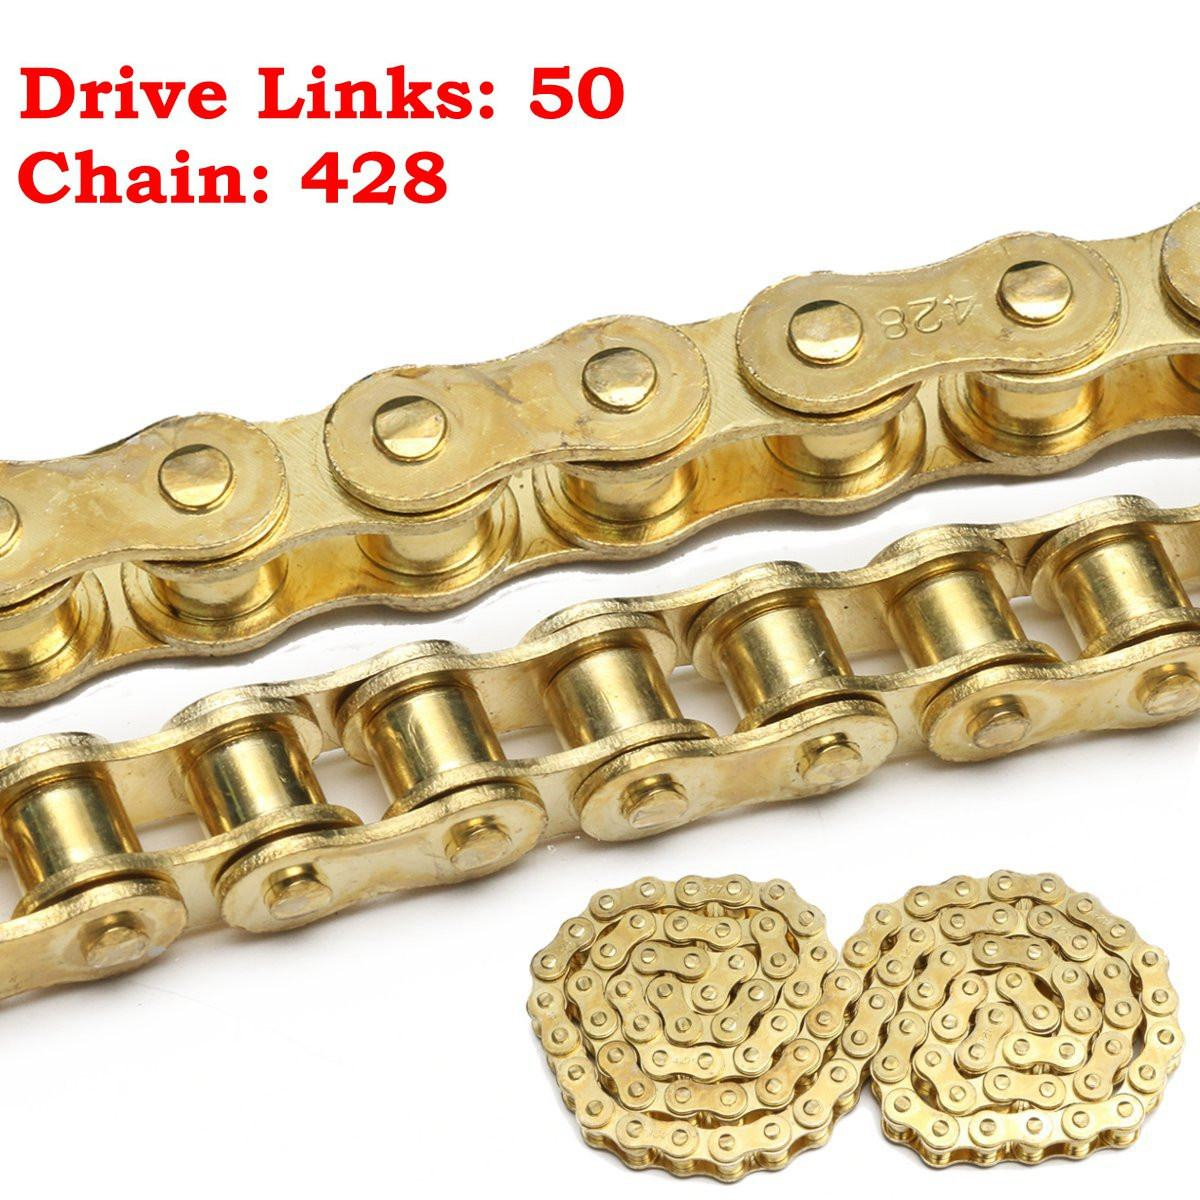 Strong-Willed Gold 50 Link 428 Drive Chain For 50cc 110cc 125cc 140cc Pit Dirt Bike Pitbike Quad Atv Back To Search Resultsautomobiles & Motorcycles Atv Parts & Accessories